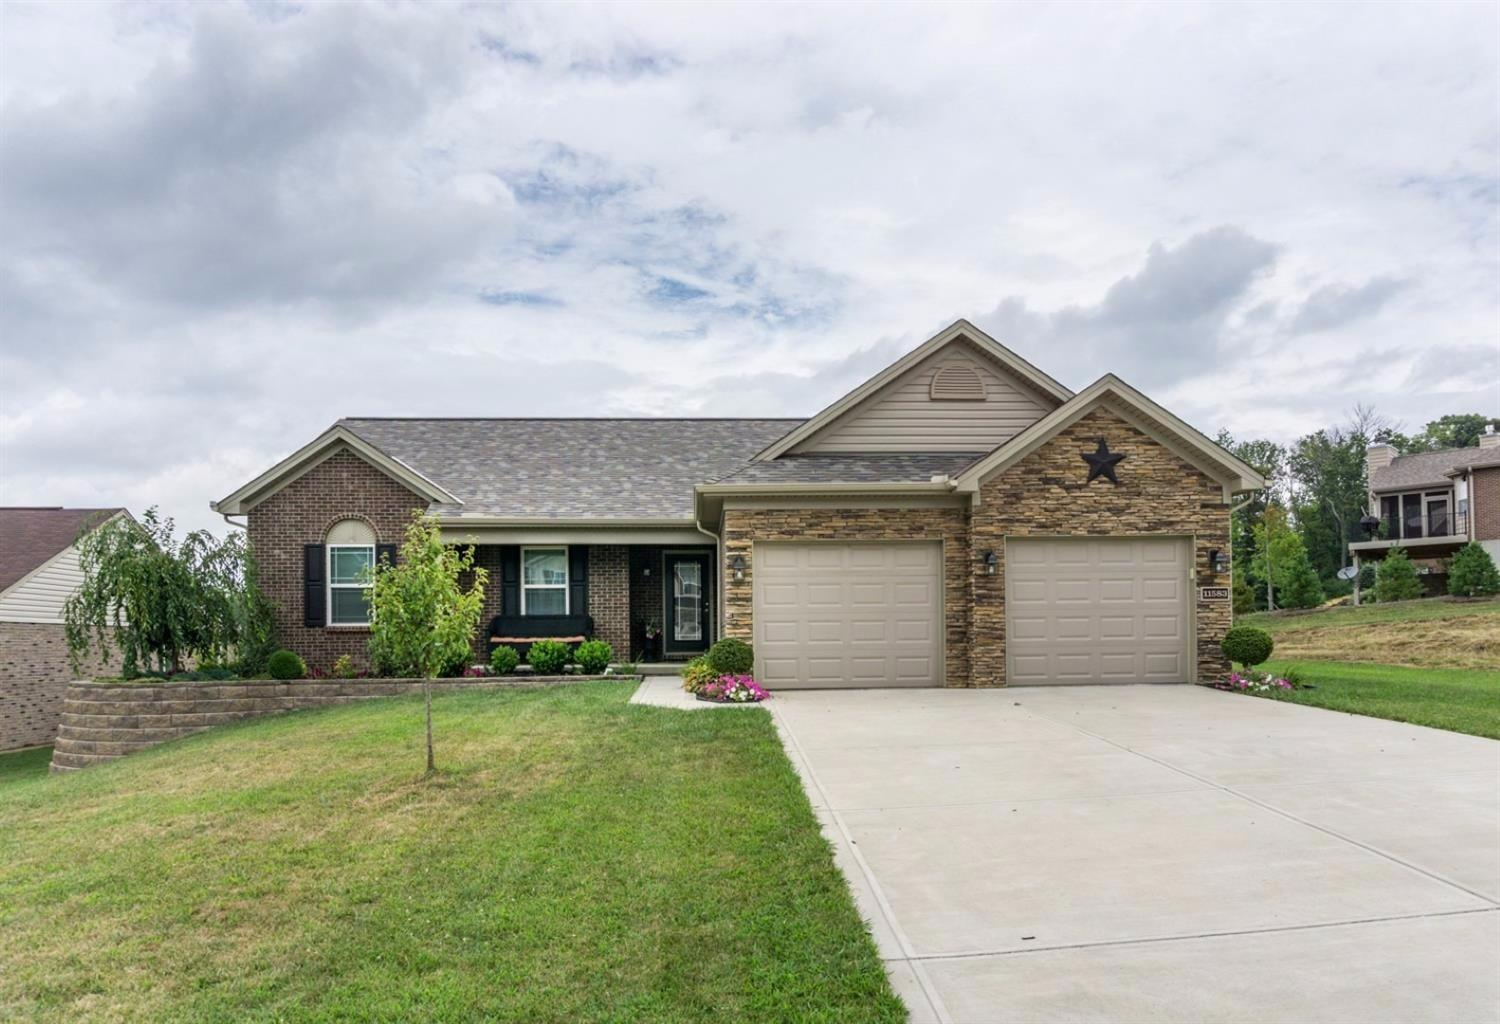 Photo 1 for 11583 Saratoga Ct Independence, KY 41051